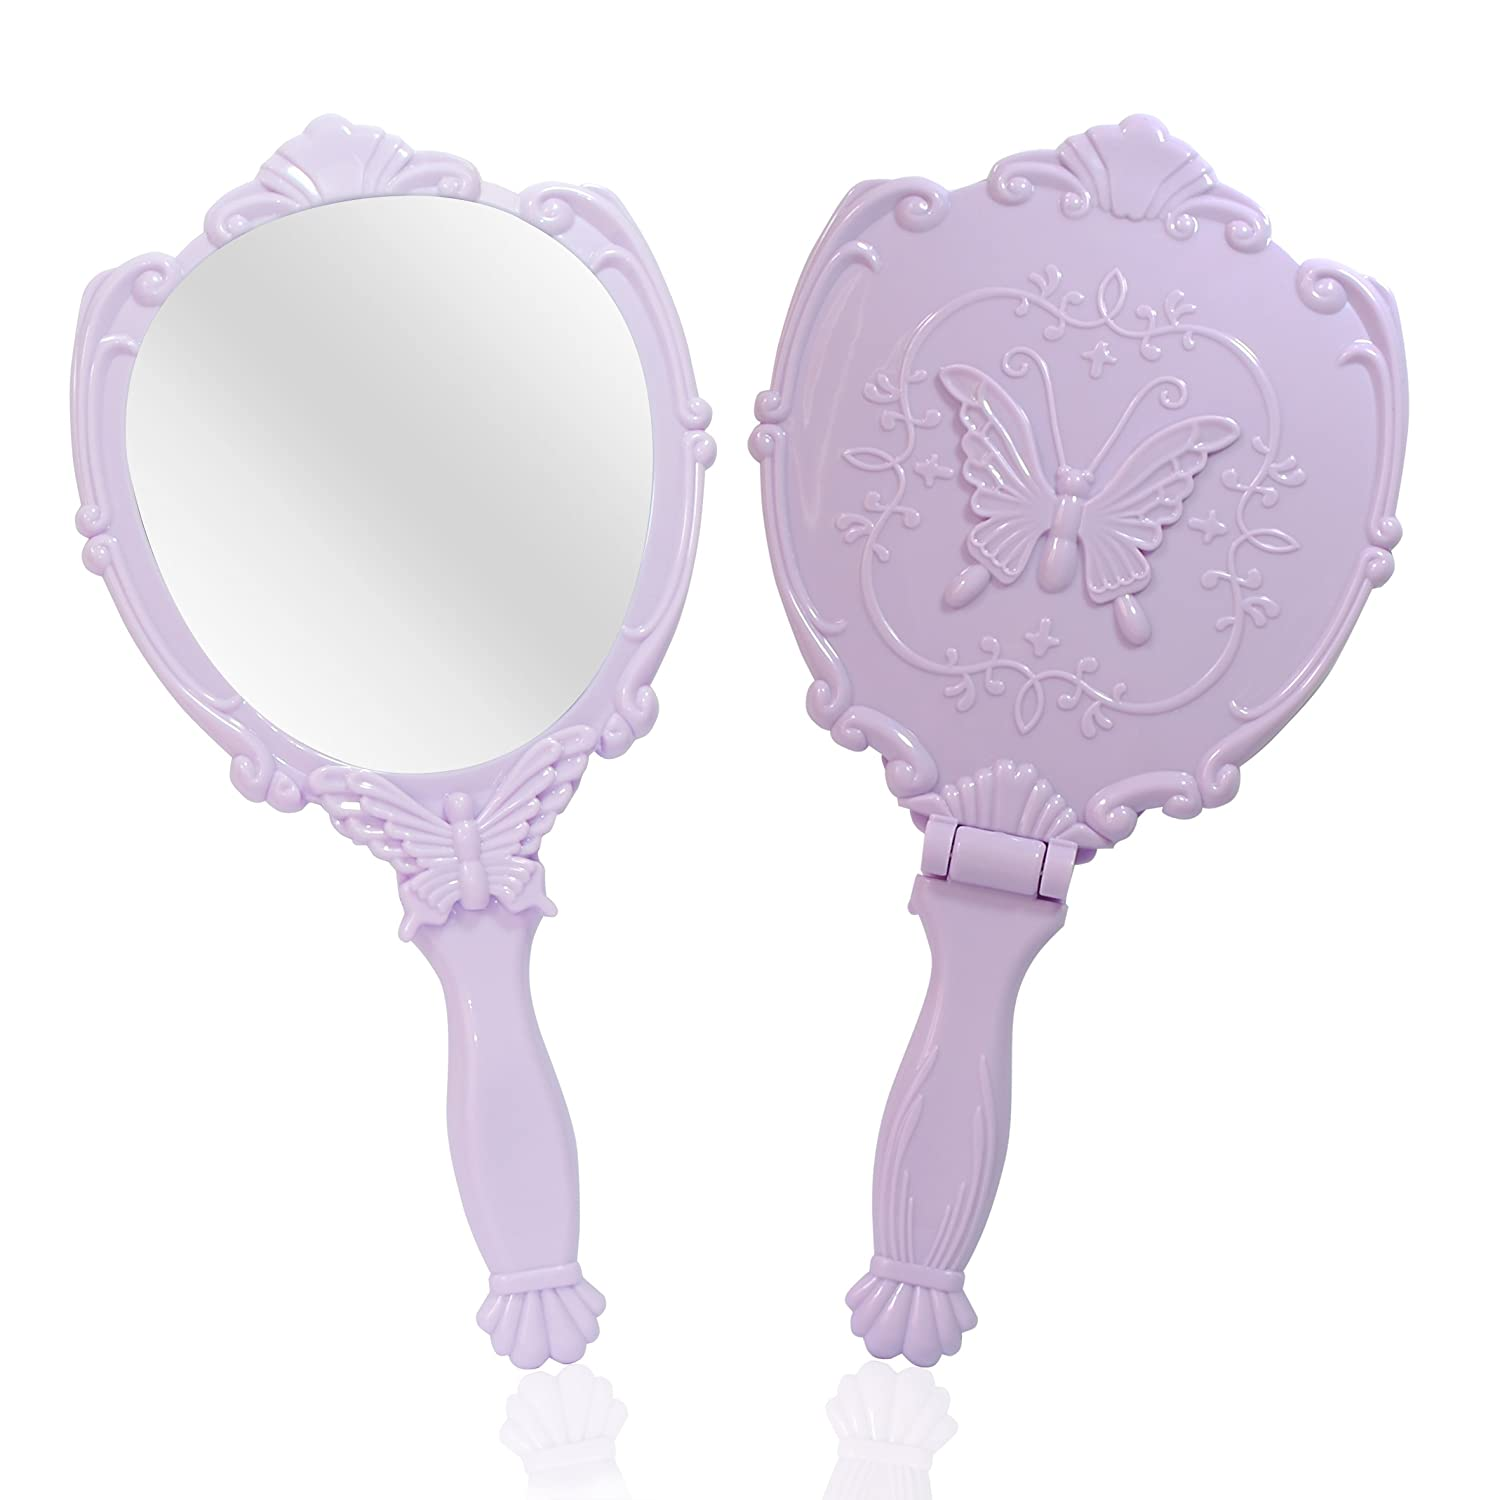 Embossed Butterfly Handheld Mirror with Folding Handle, Princess Style